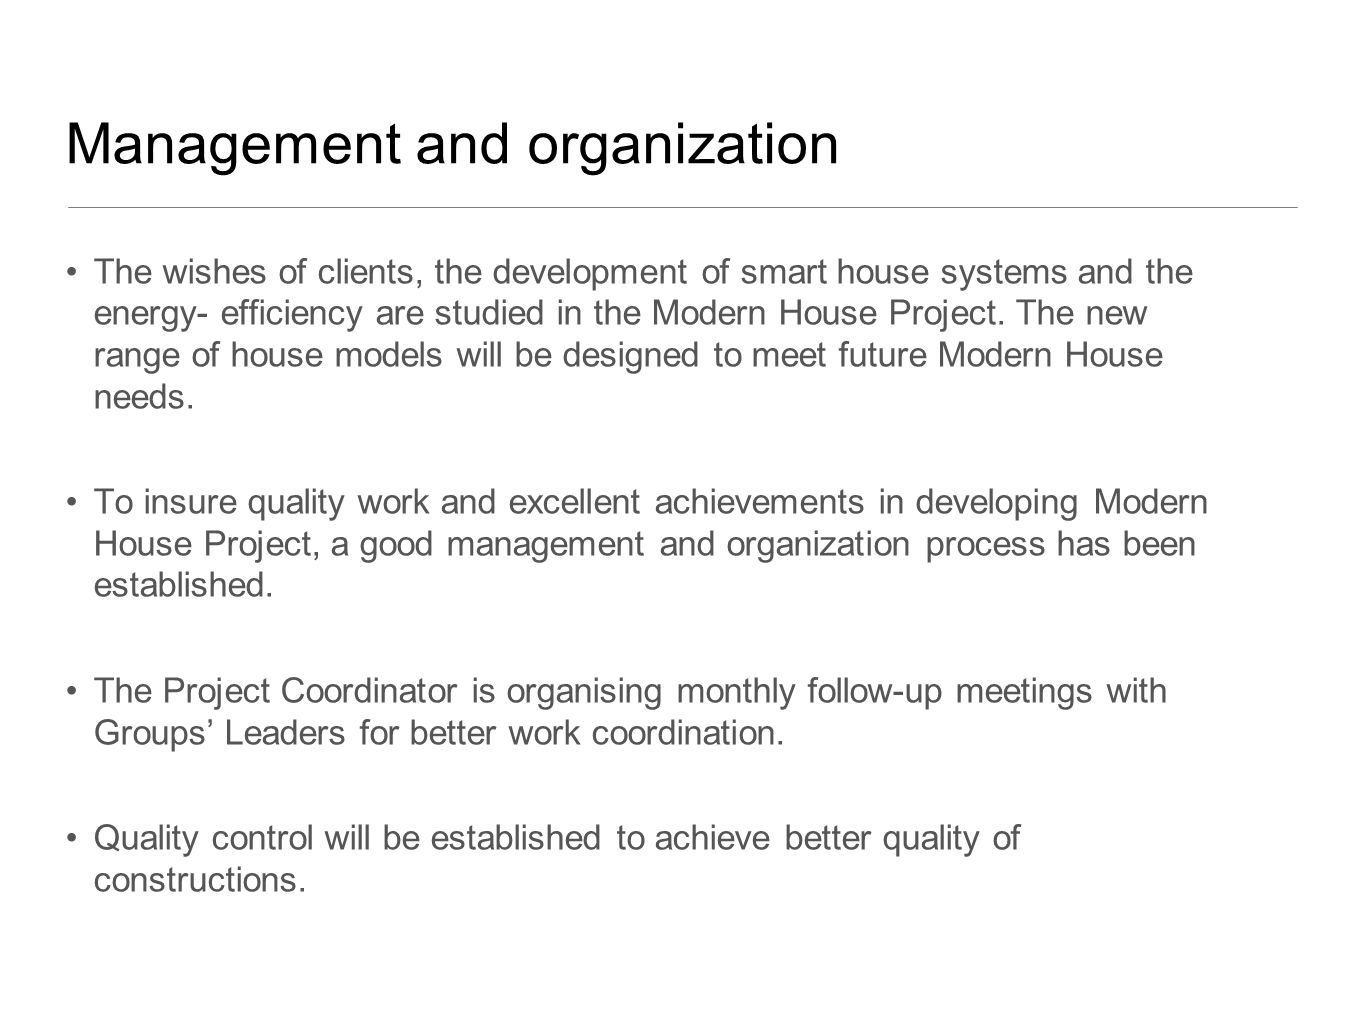 Management and organization The wishes of clients, the development of smart house systems and the energy- efficiency are studied in the Modern House Project.